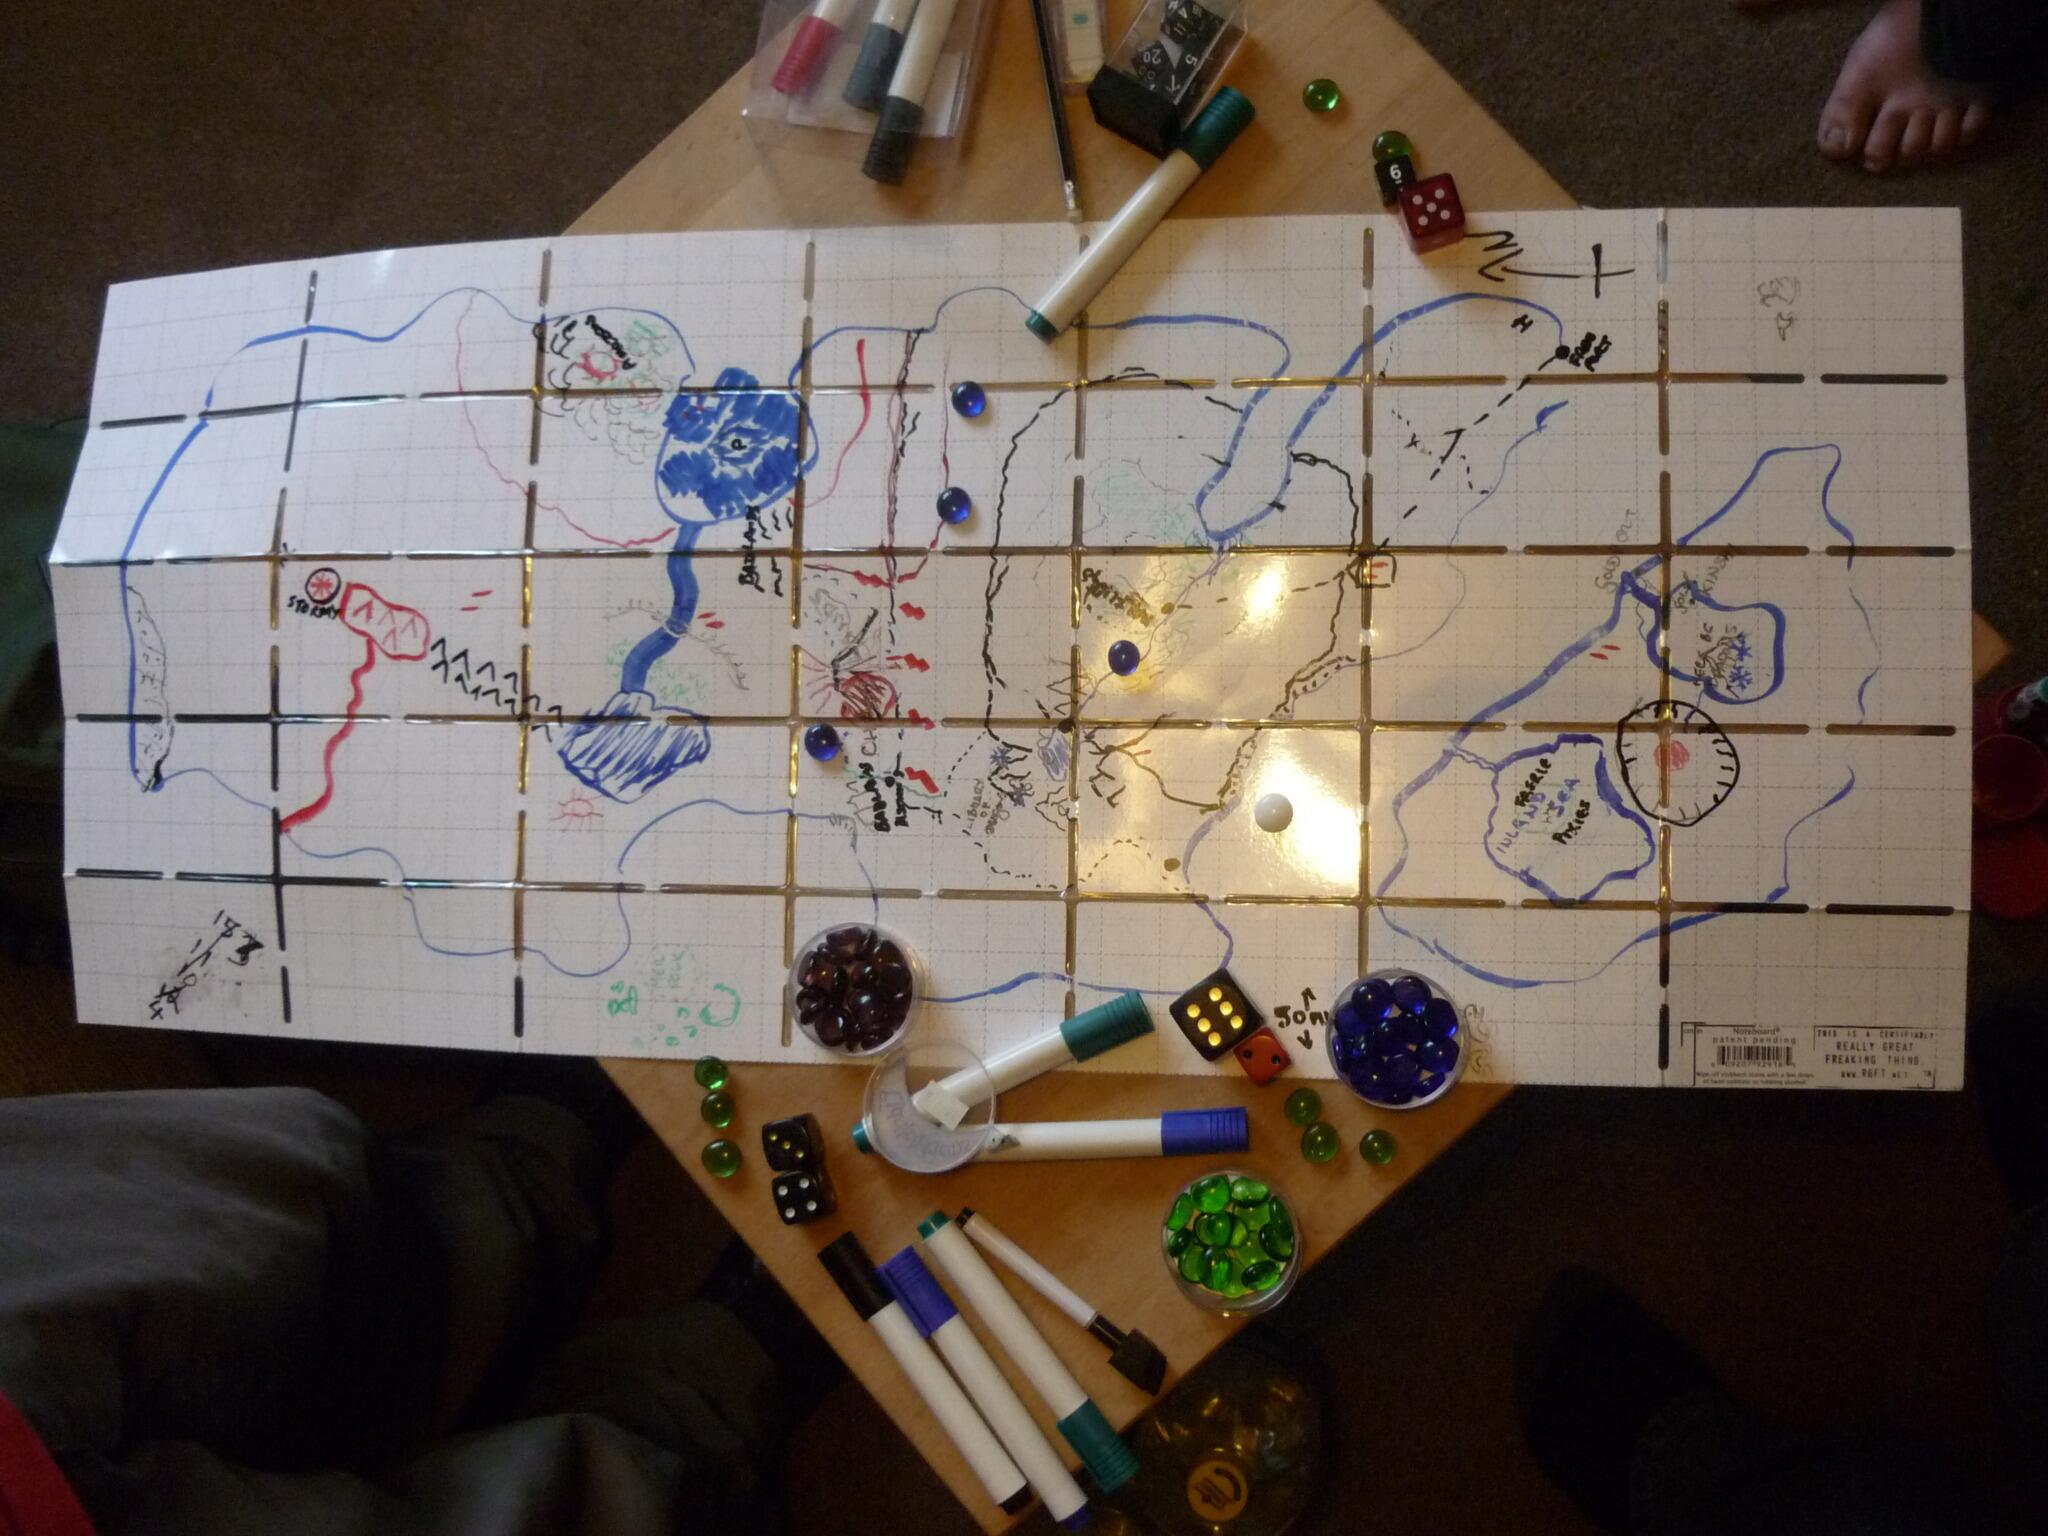 A foldable whiteboard - the Noteboard - is laid on a table.  On it is a map drawn in a variety of colours.  Some whiteboard pens and dice are scattered around the edge.